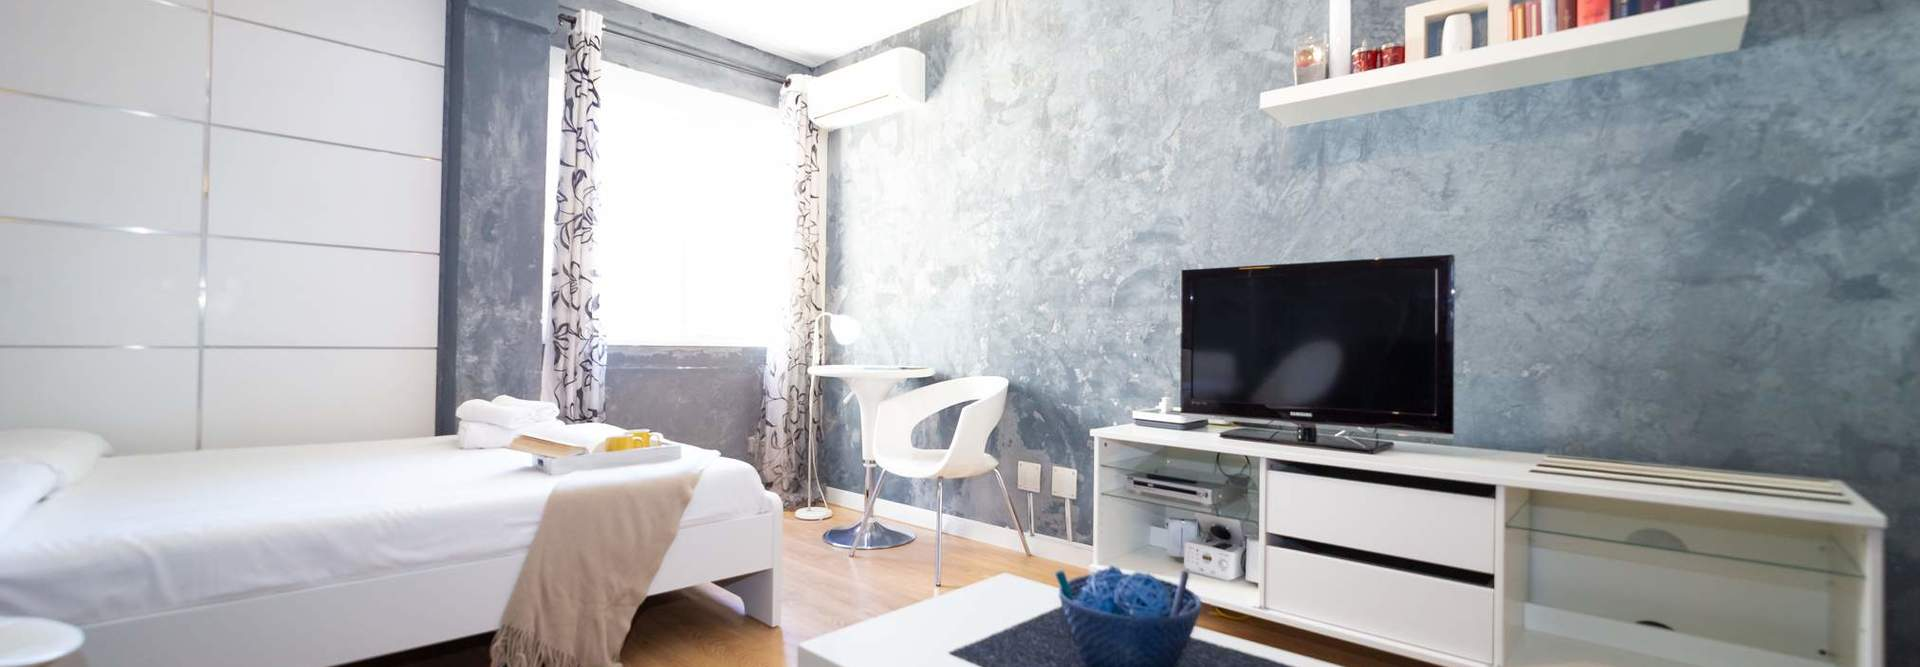 Home alquiler apartamentos madrid mad4rent 44